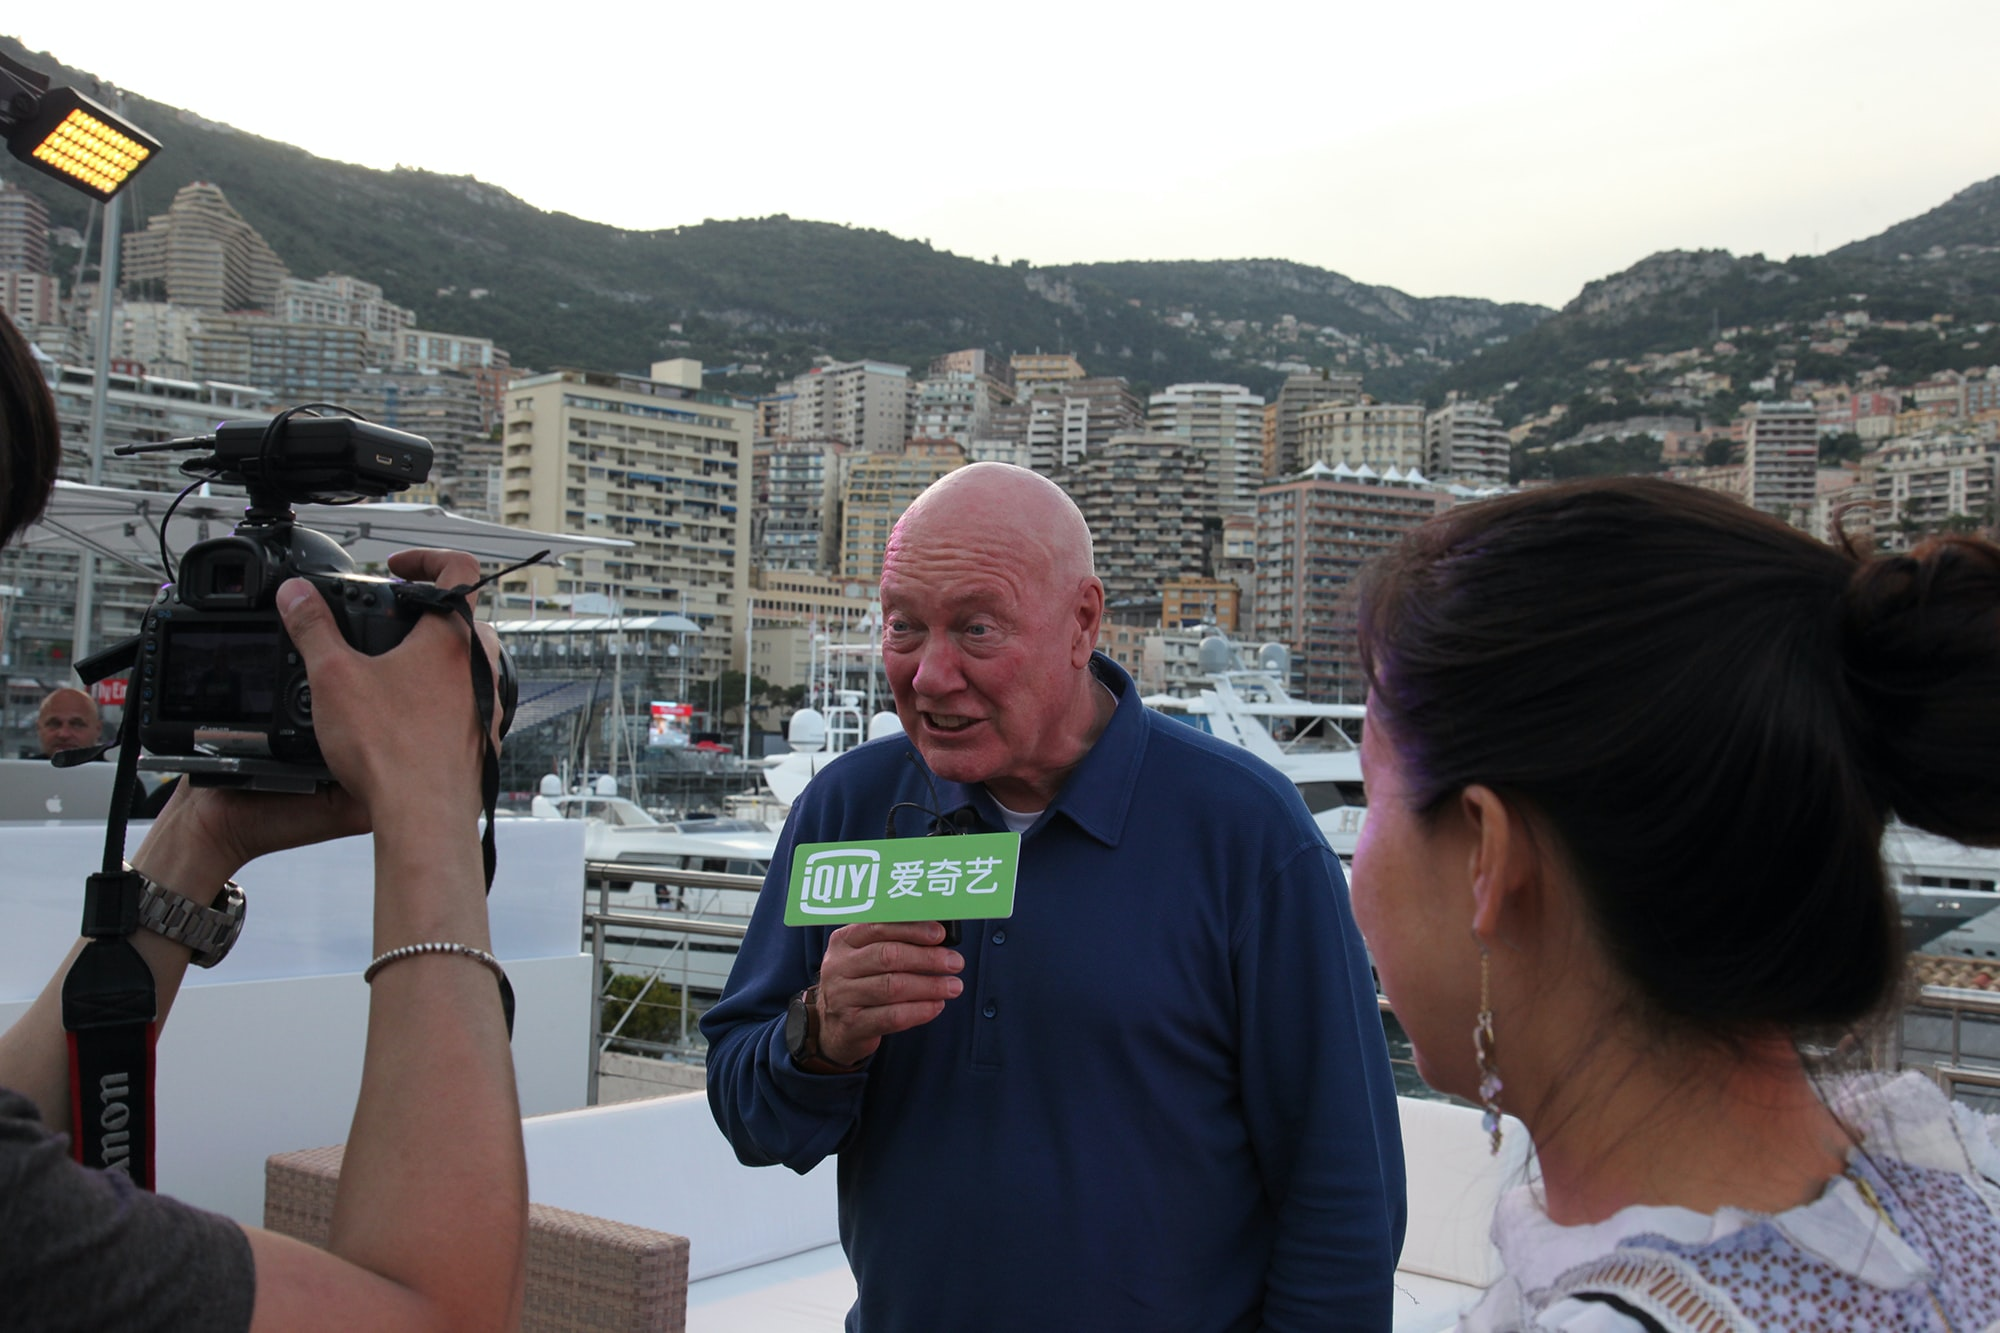 Photo Report: Behind The Scenes At The Monaco Grand Prix 2016 With TAG Heuer CEO Jean-Claude Biver Photo Report: Behind The Scenes At The Monaco Grand Prix 2016 With TAG Heuer CEO Jean-Claude Biver r1